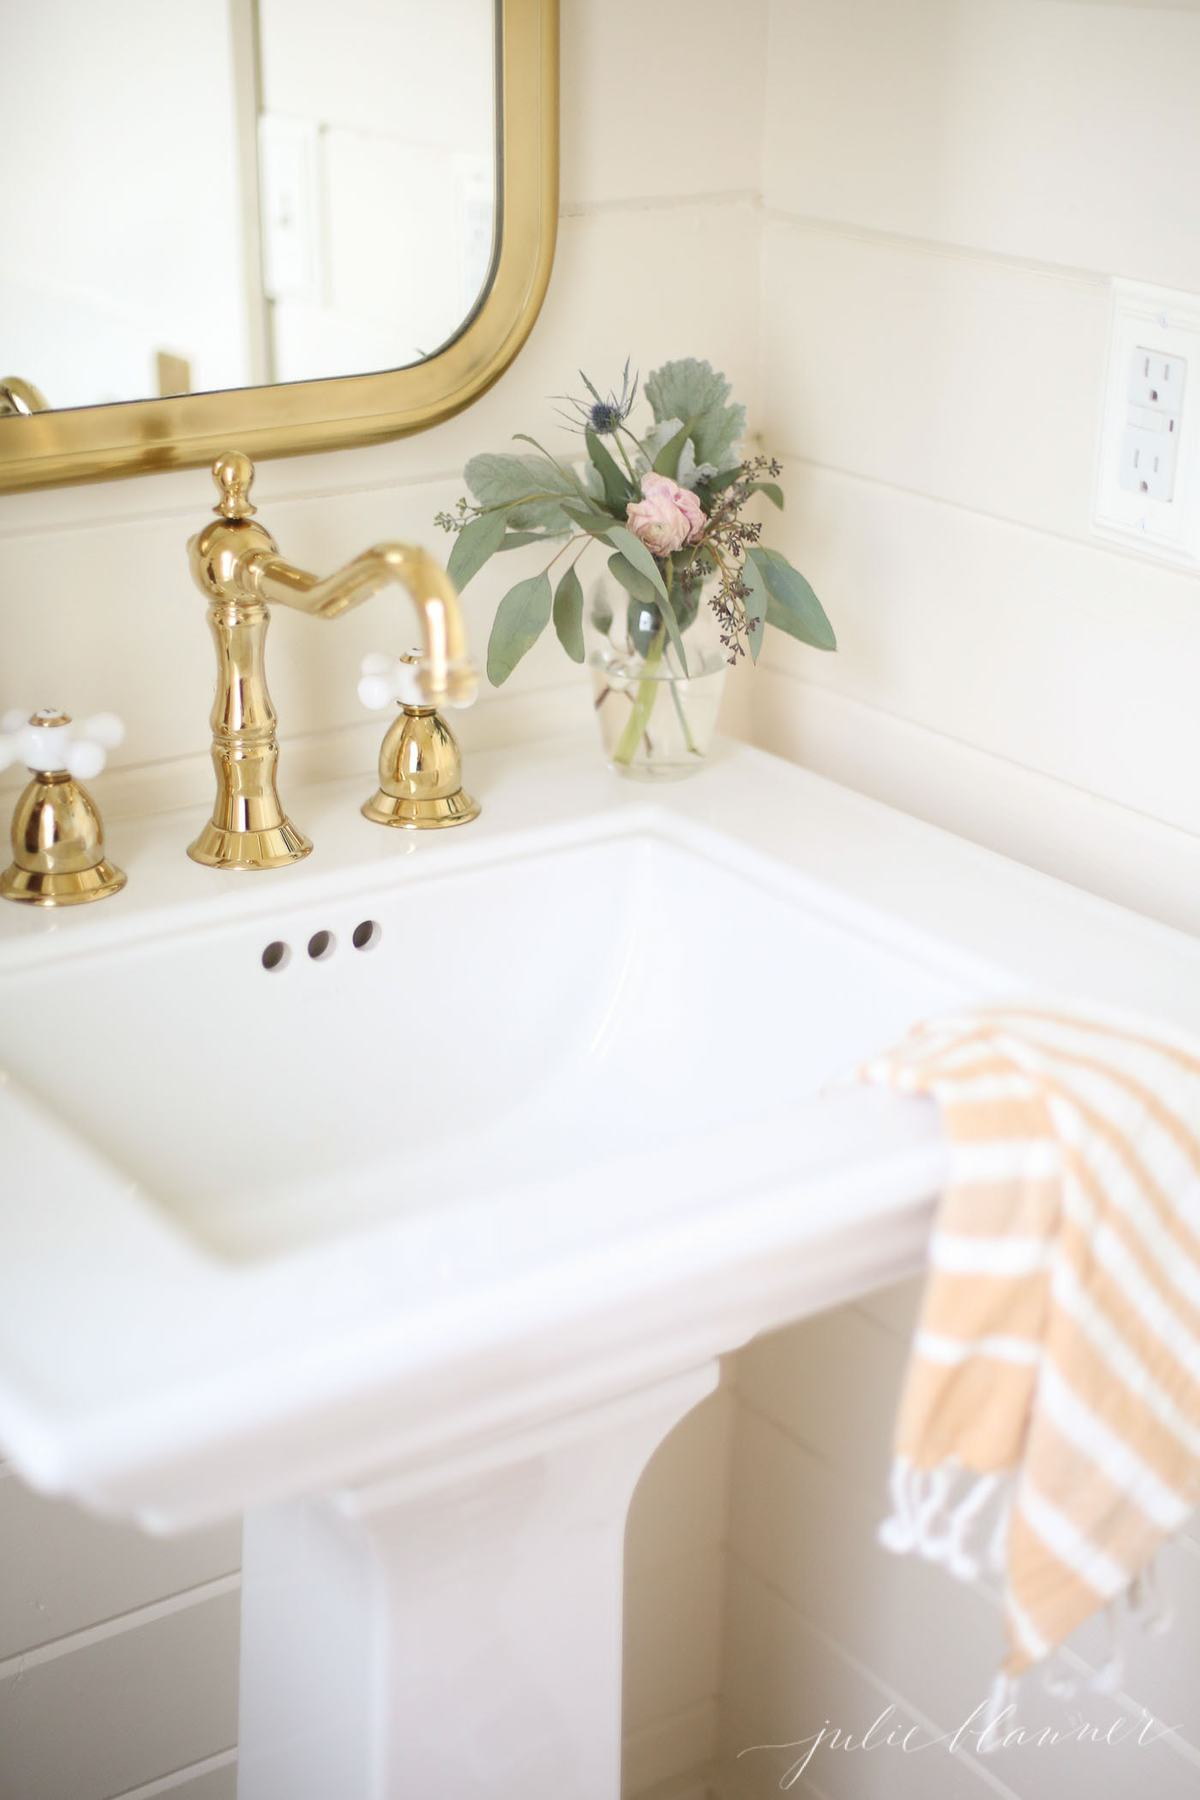 tips to update an old home and make it feel new